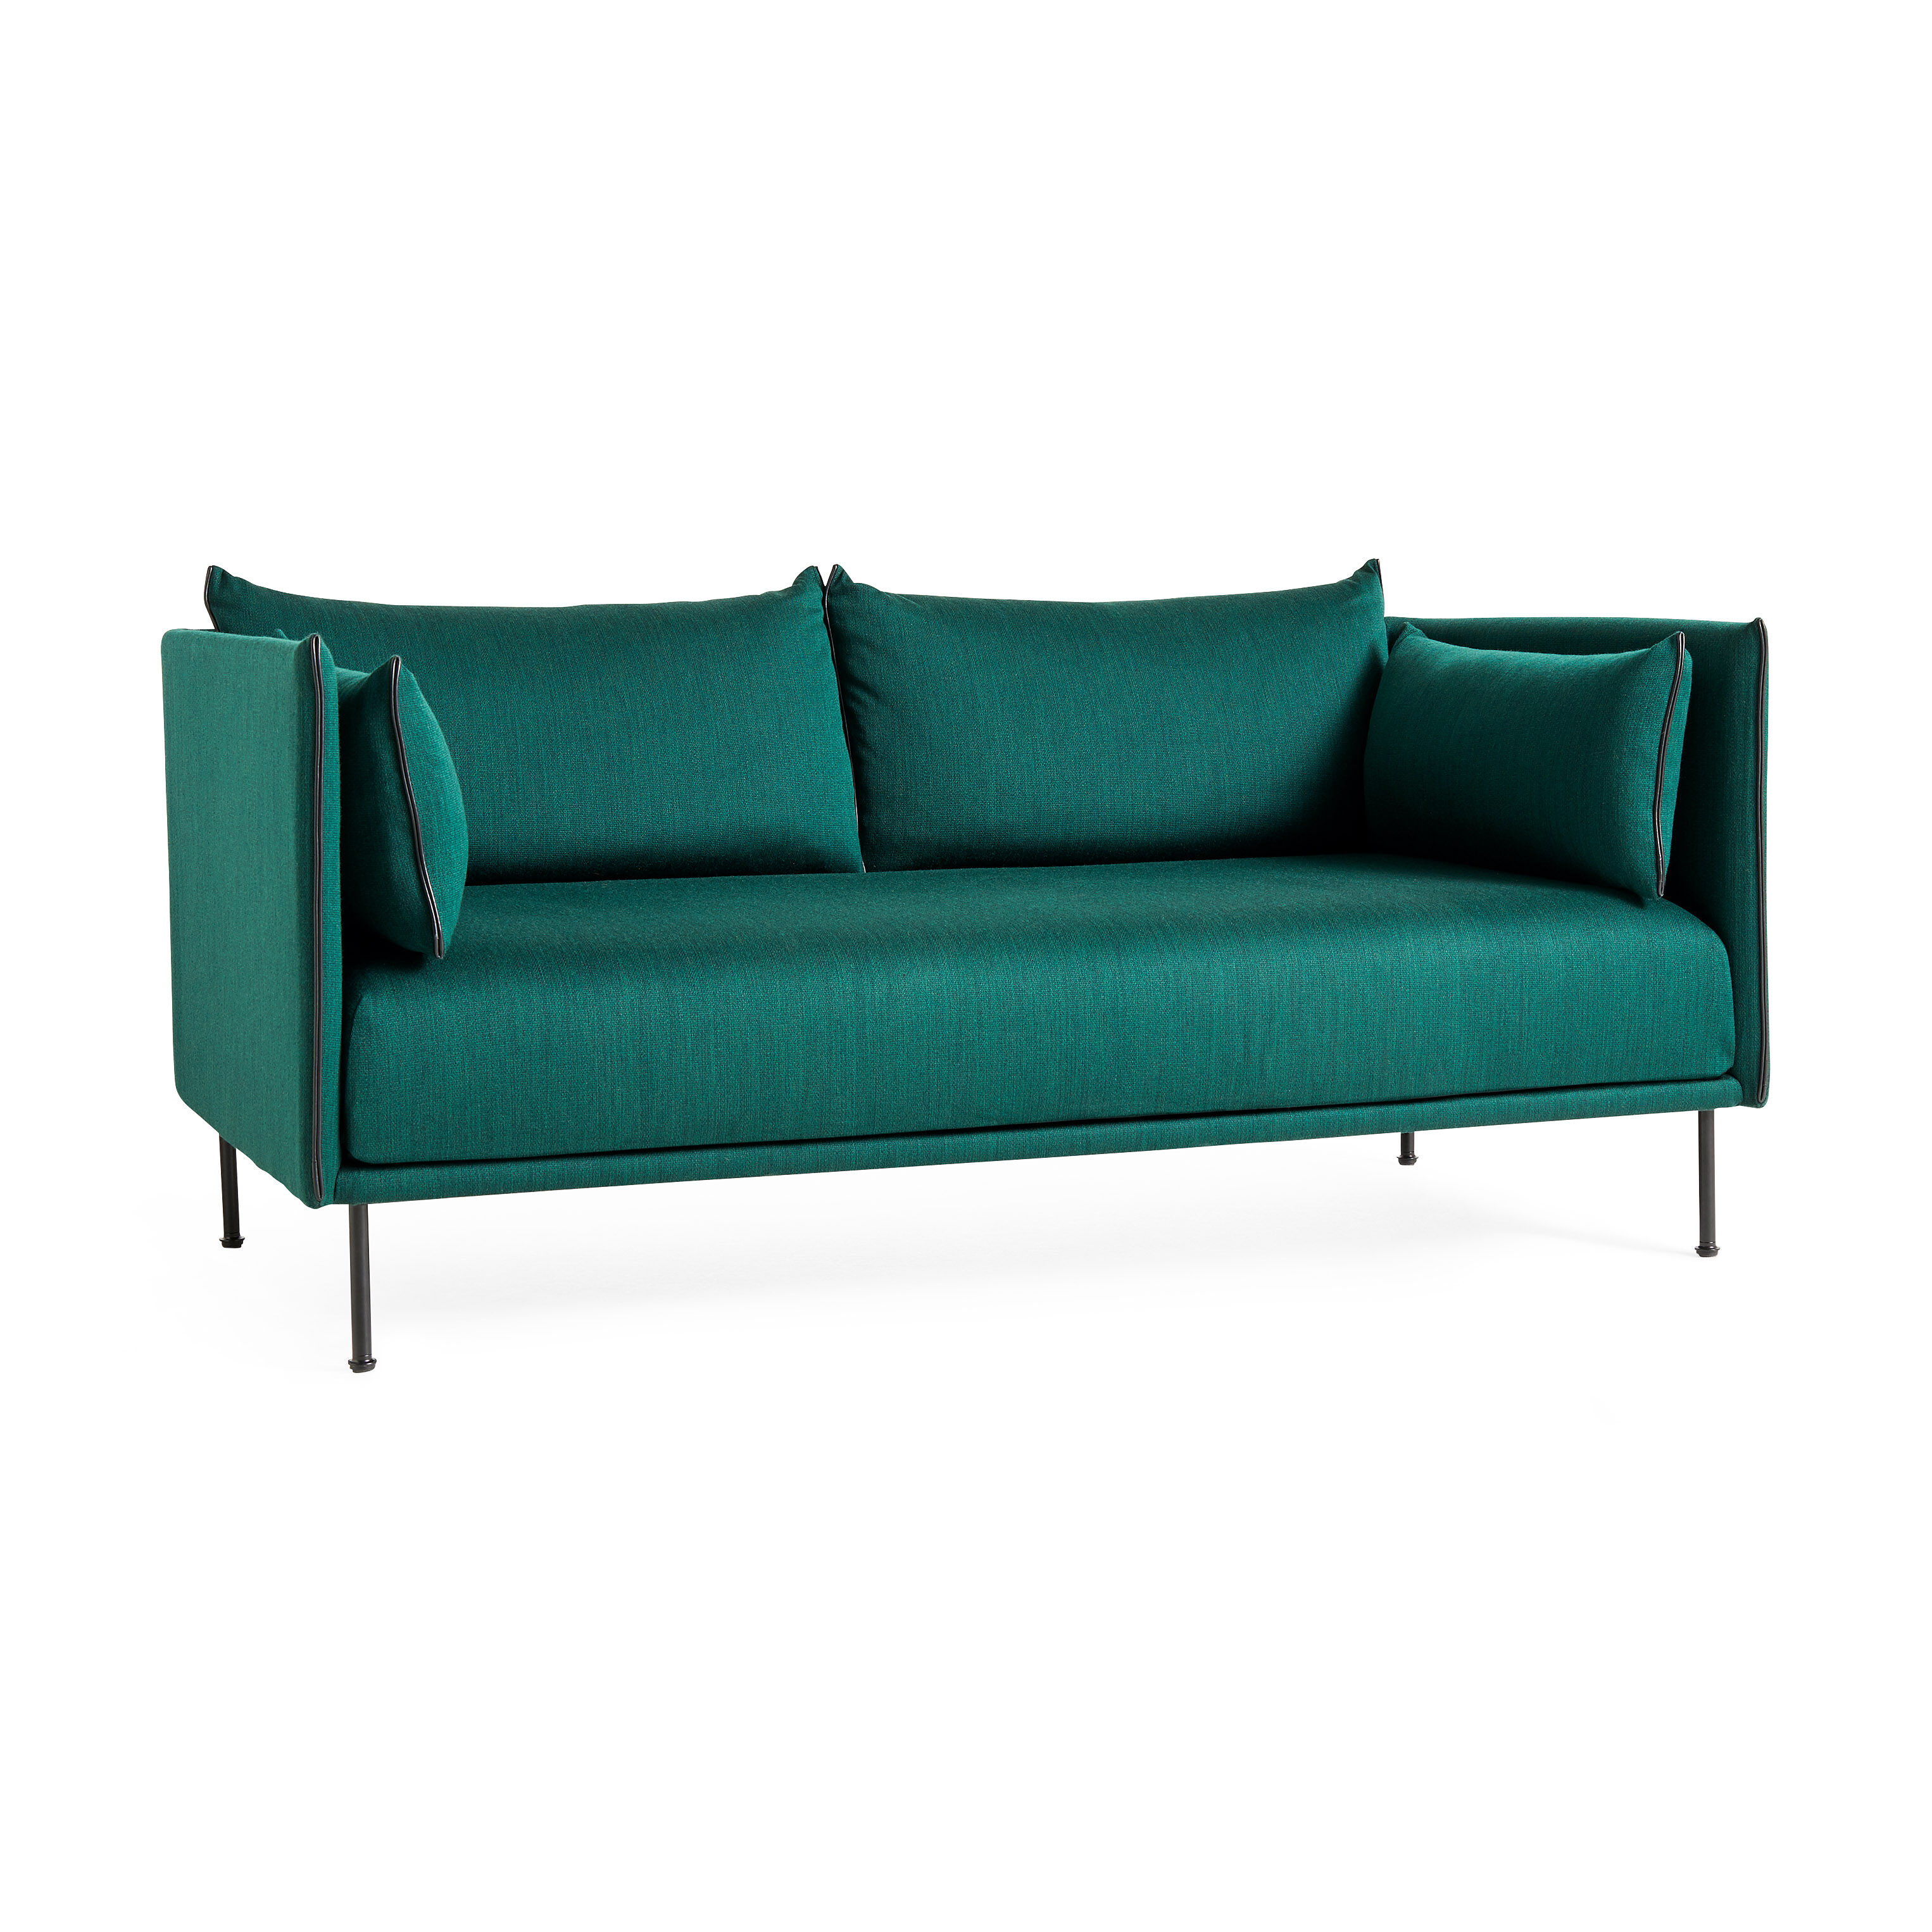 Beau HAY Silhouette Two Seater Sofa In Color